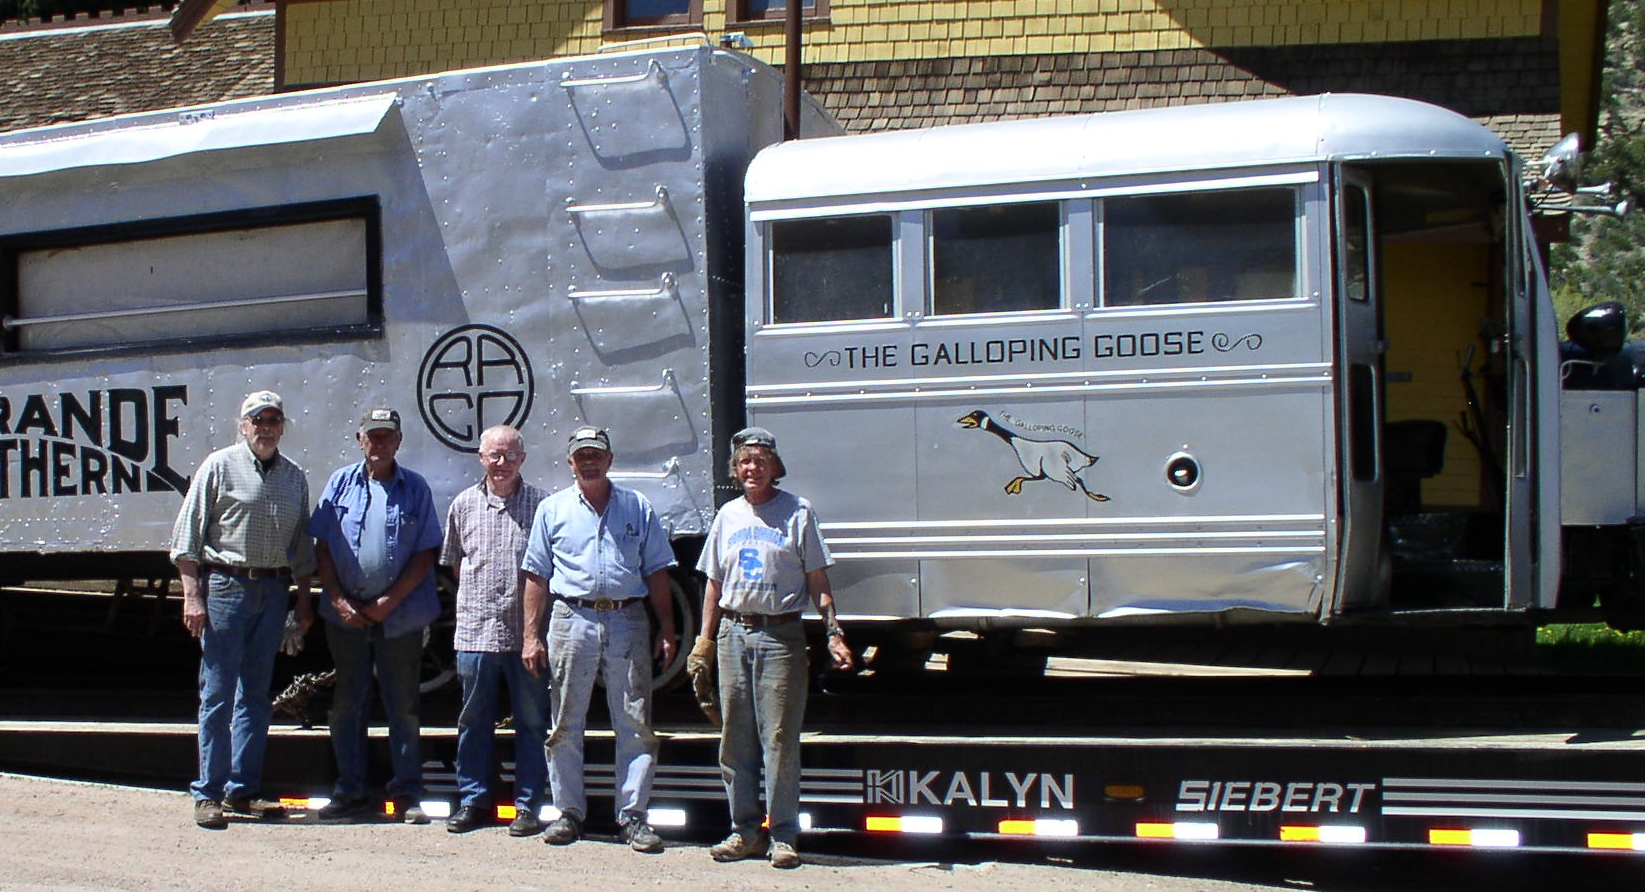 Loading crew May, 2009: Tom Garrison, Ed Latham, Jerry McKenzie, Larry Spencer and Lew Matis